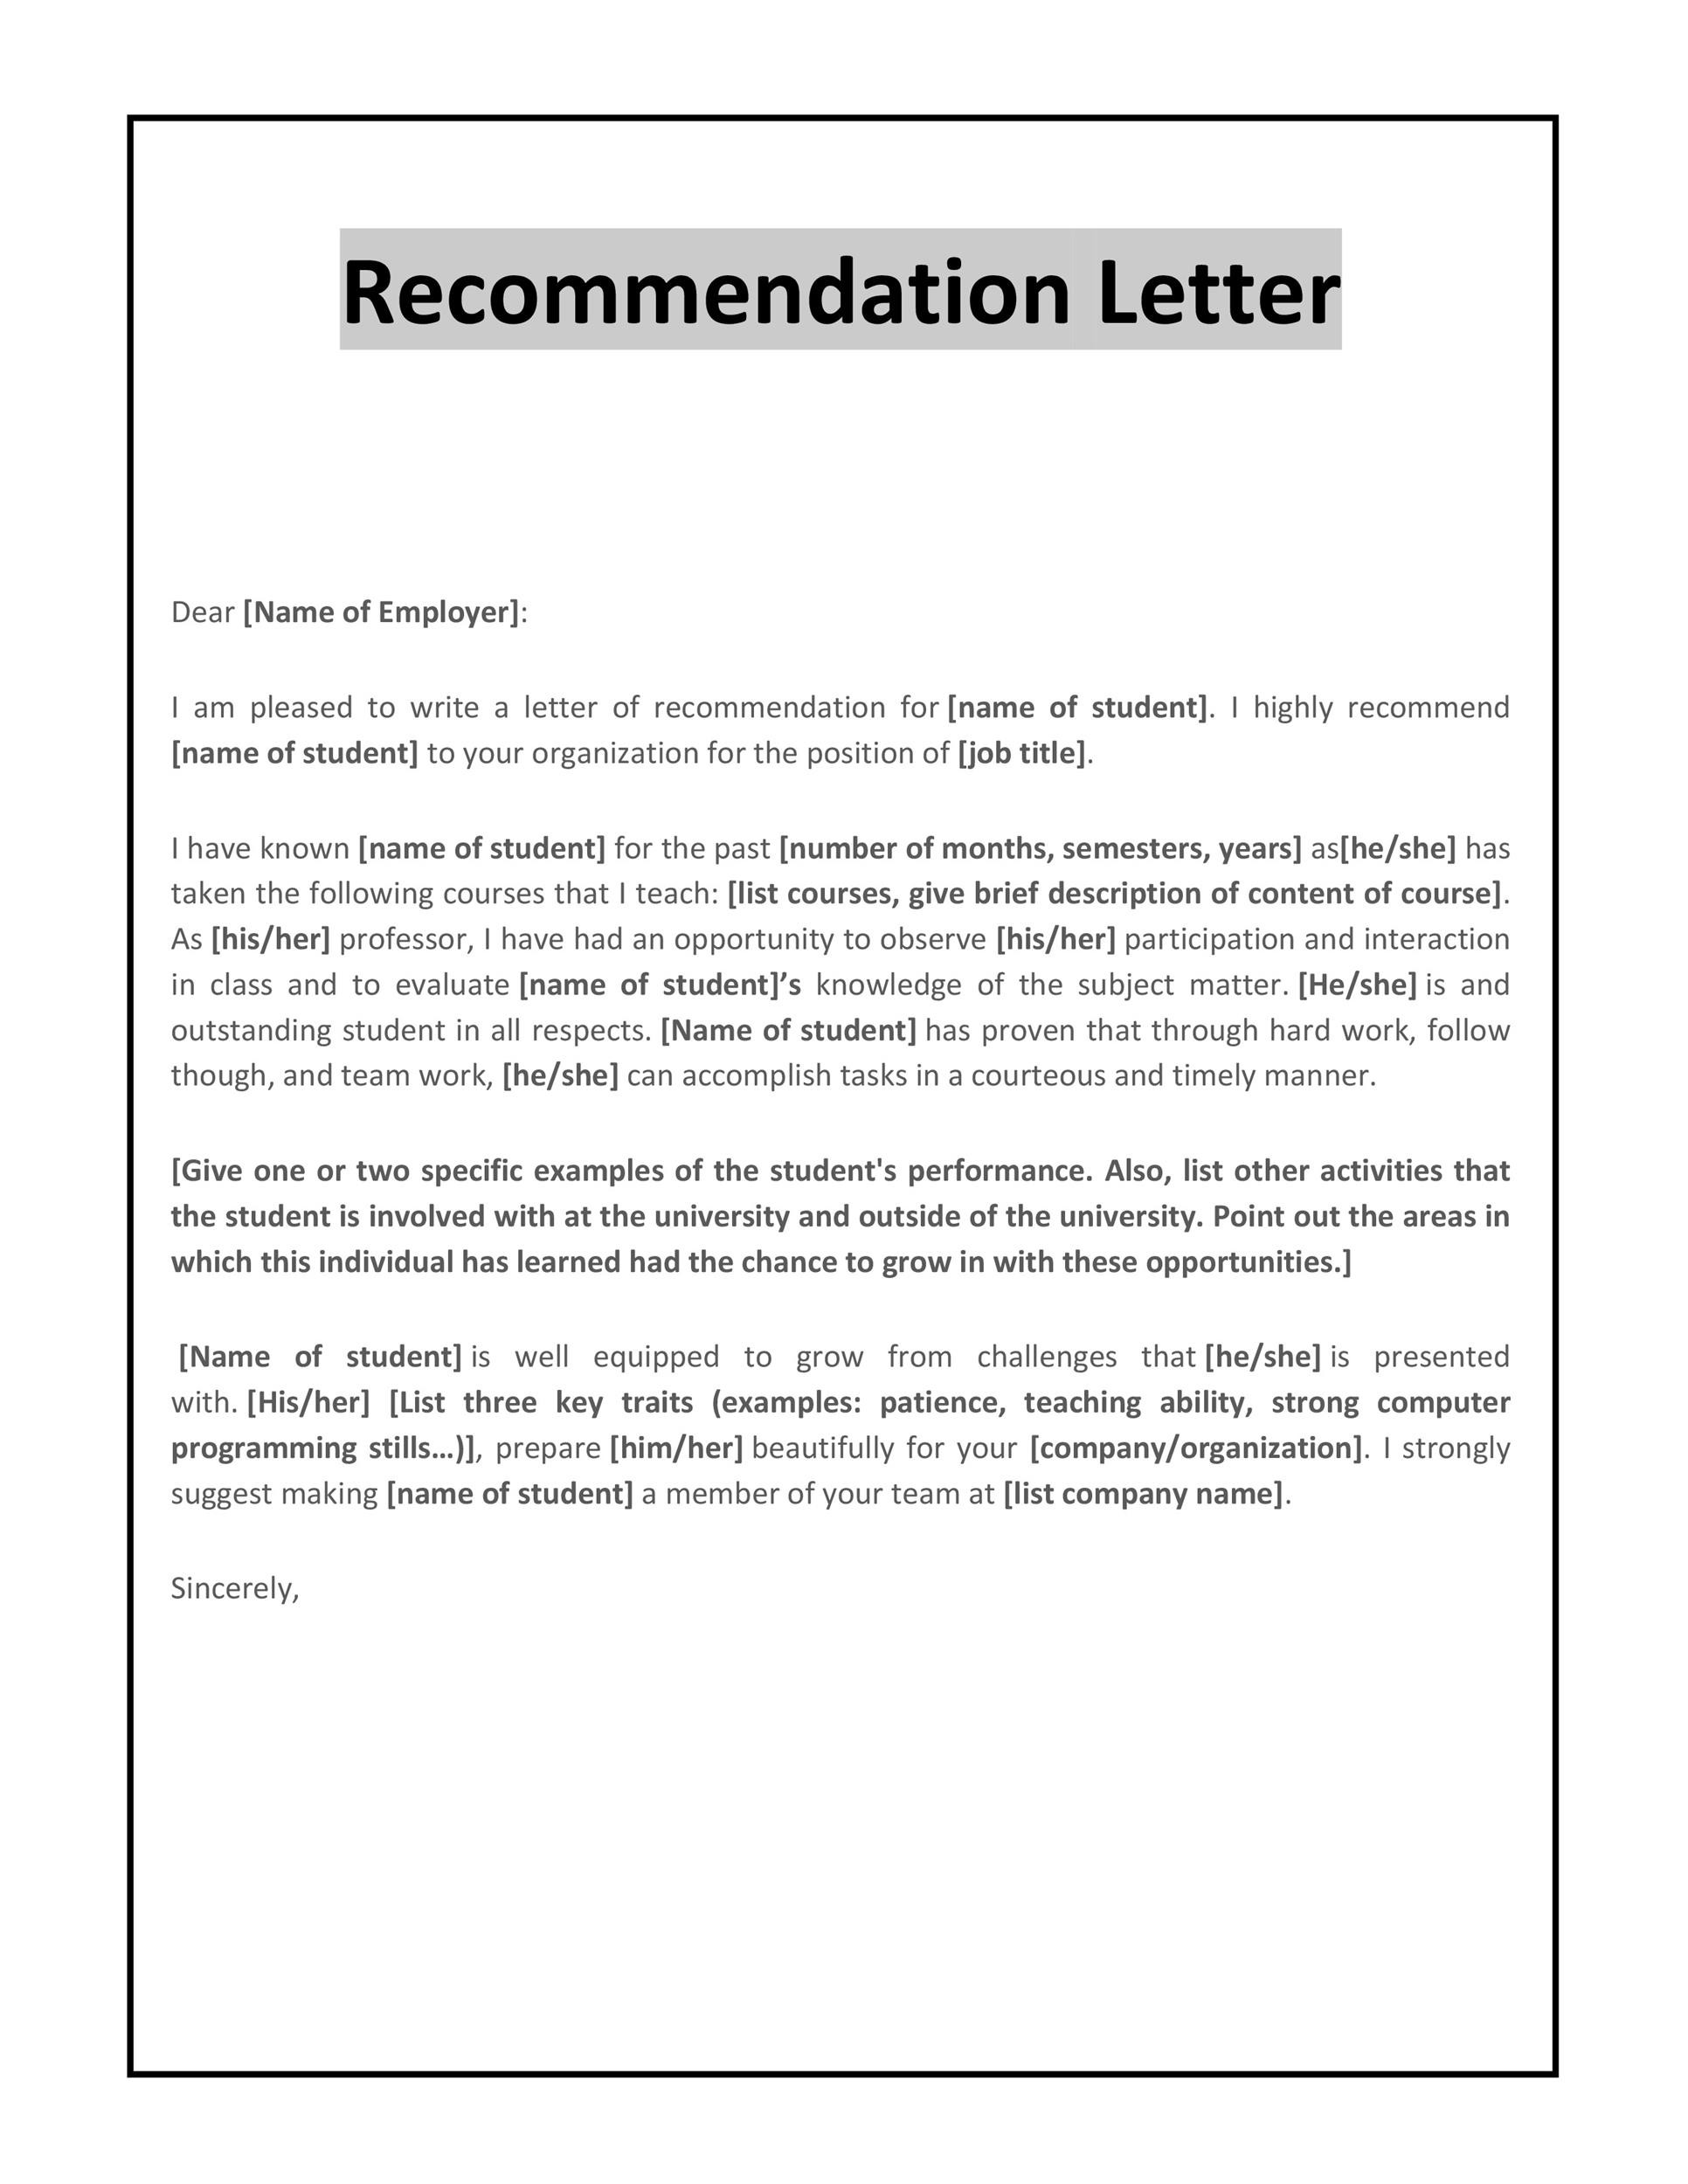 how to write a recommendation letter 43 free letter of recommendation templates samples 22448 | letter of recommendation 29